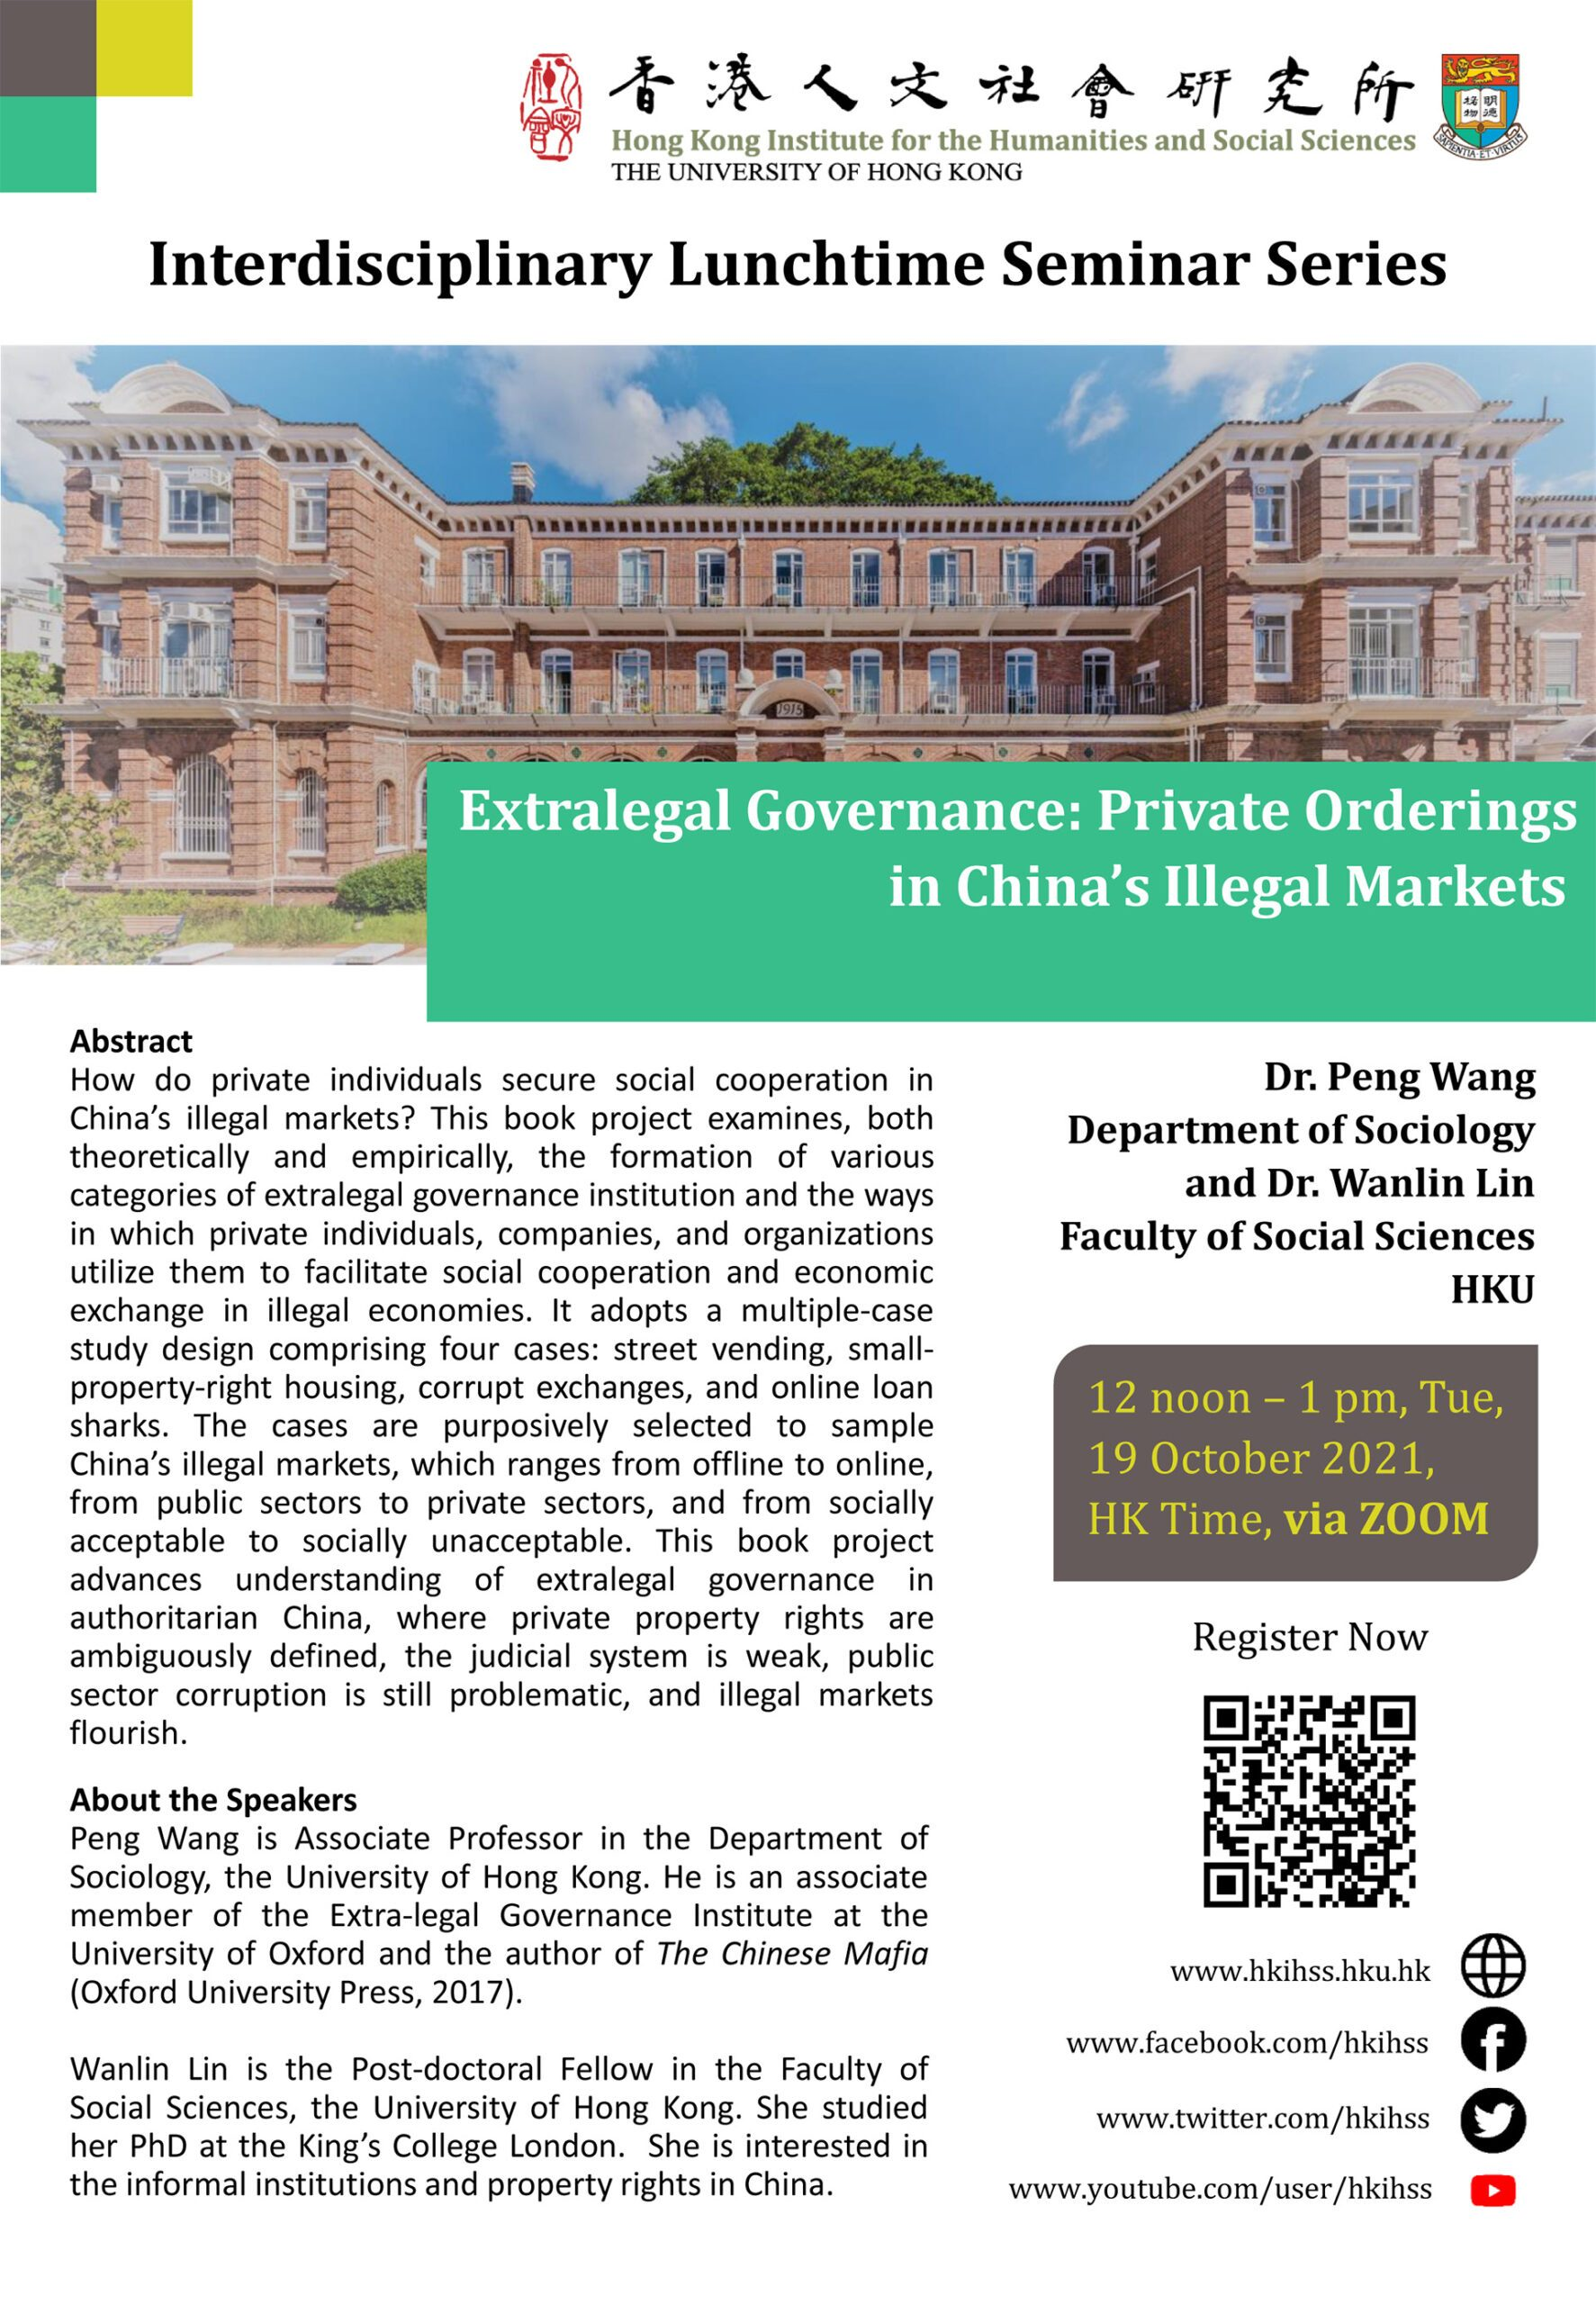 """Interdisciplinary Lunchtime Seminar on """"Extralegal Governance: Private Orderings in China's Illegal Markets"""" by Dr. Peng Wang and Dr. Wanlin Lin (October 19, 2021)"""